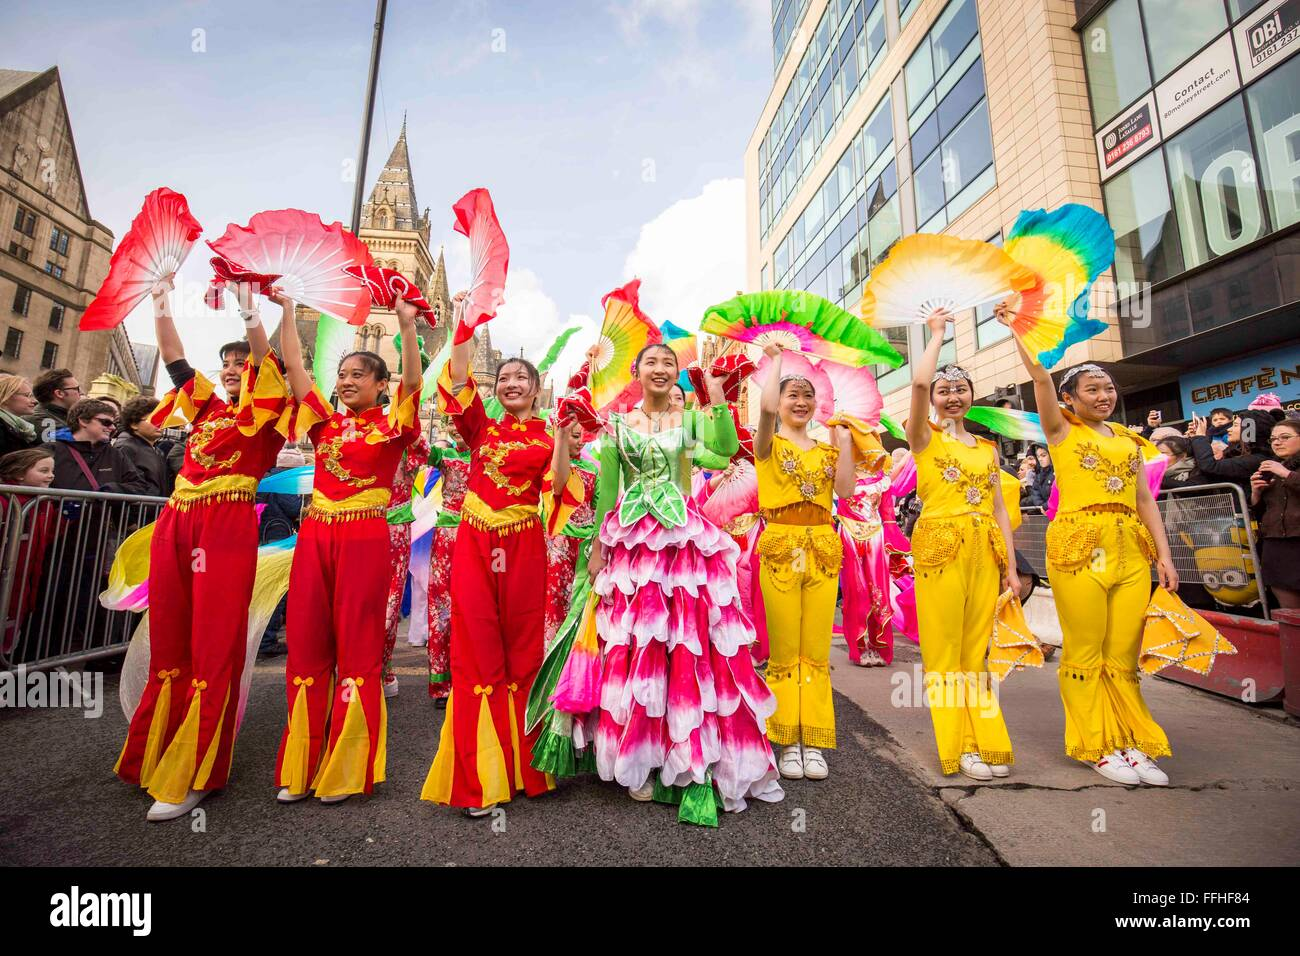 Manchester celebrates Chinese New Year today (Sunday 7th Feb 2016) with a dragon parade and traditional dancing - Stock Image